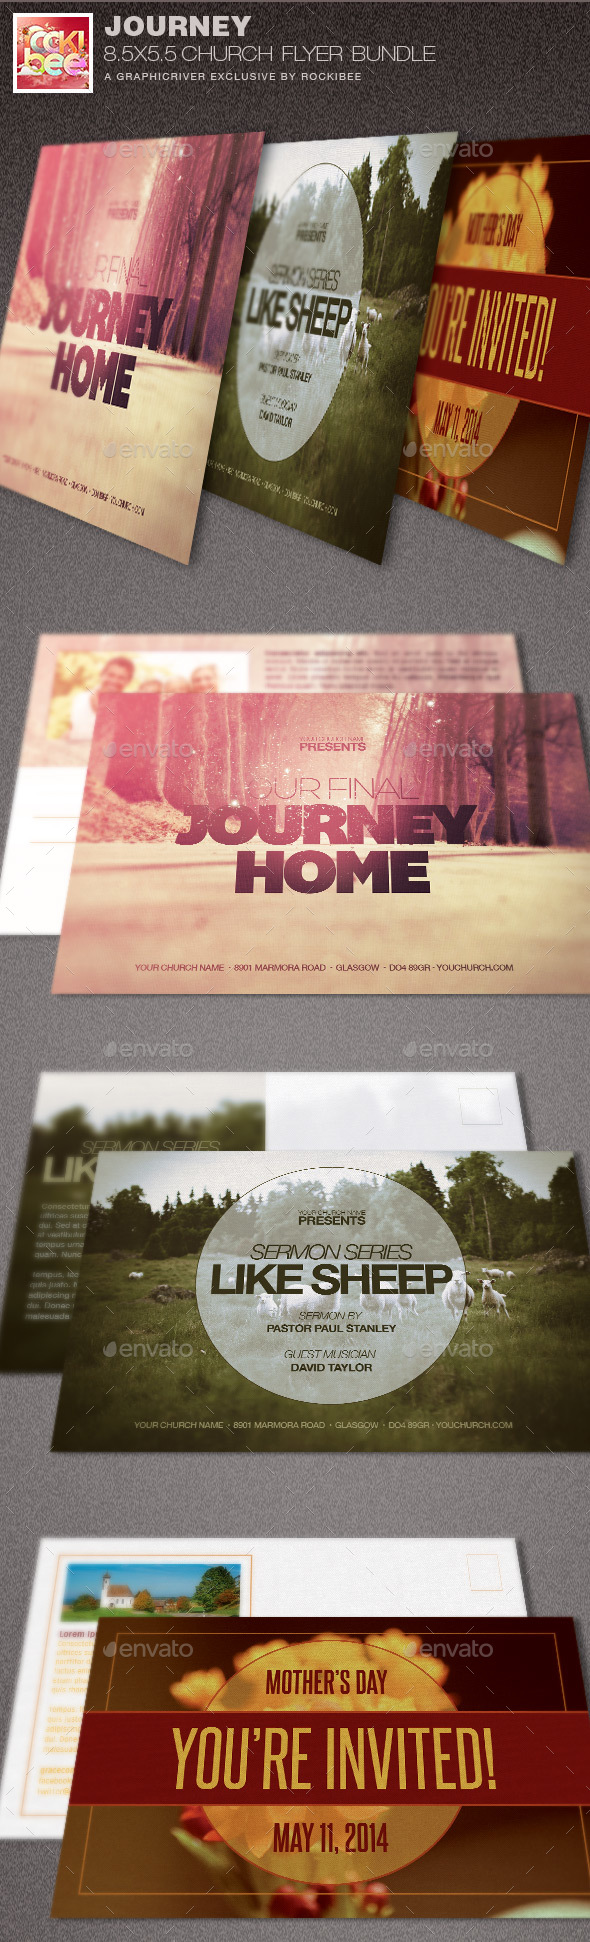 Journey Church Flyer Template Bundle - Church Flyers